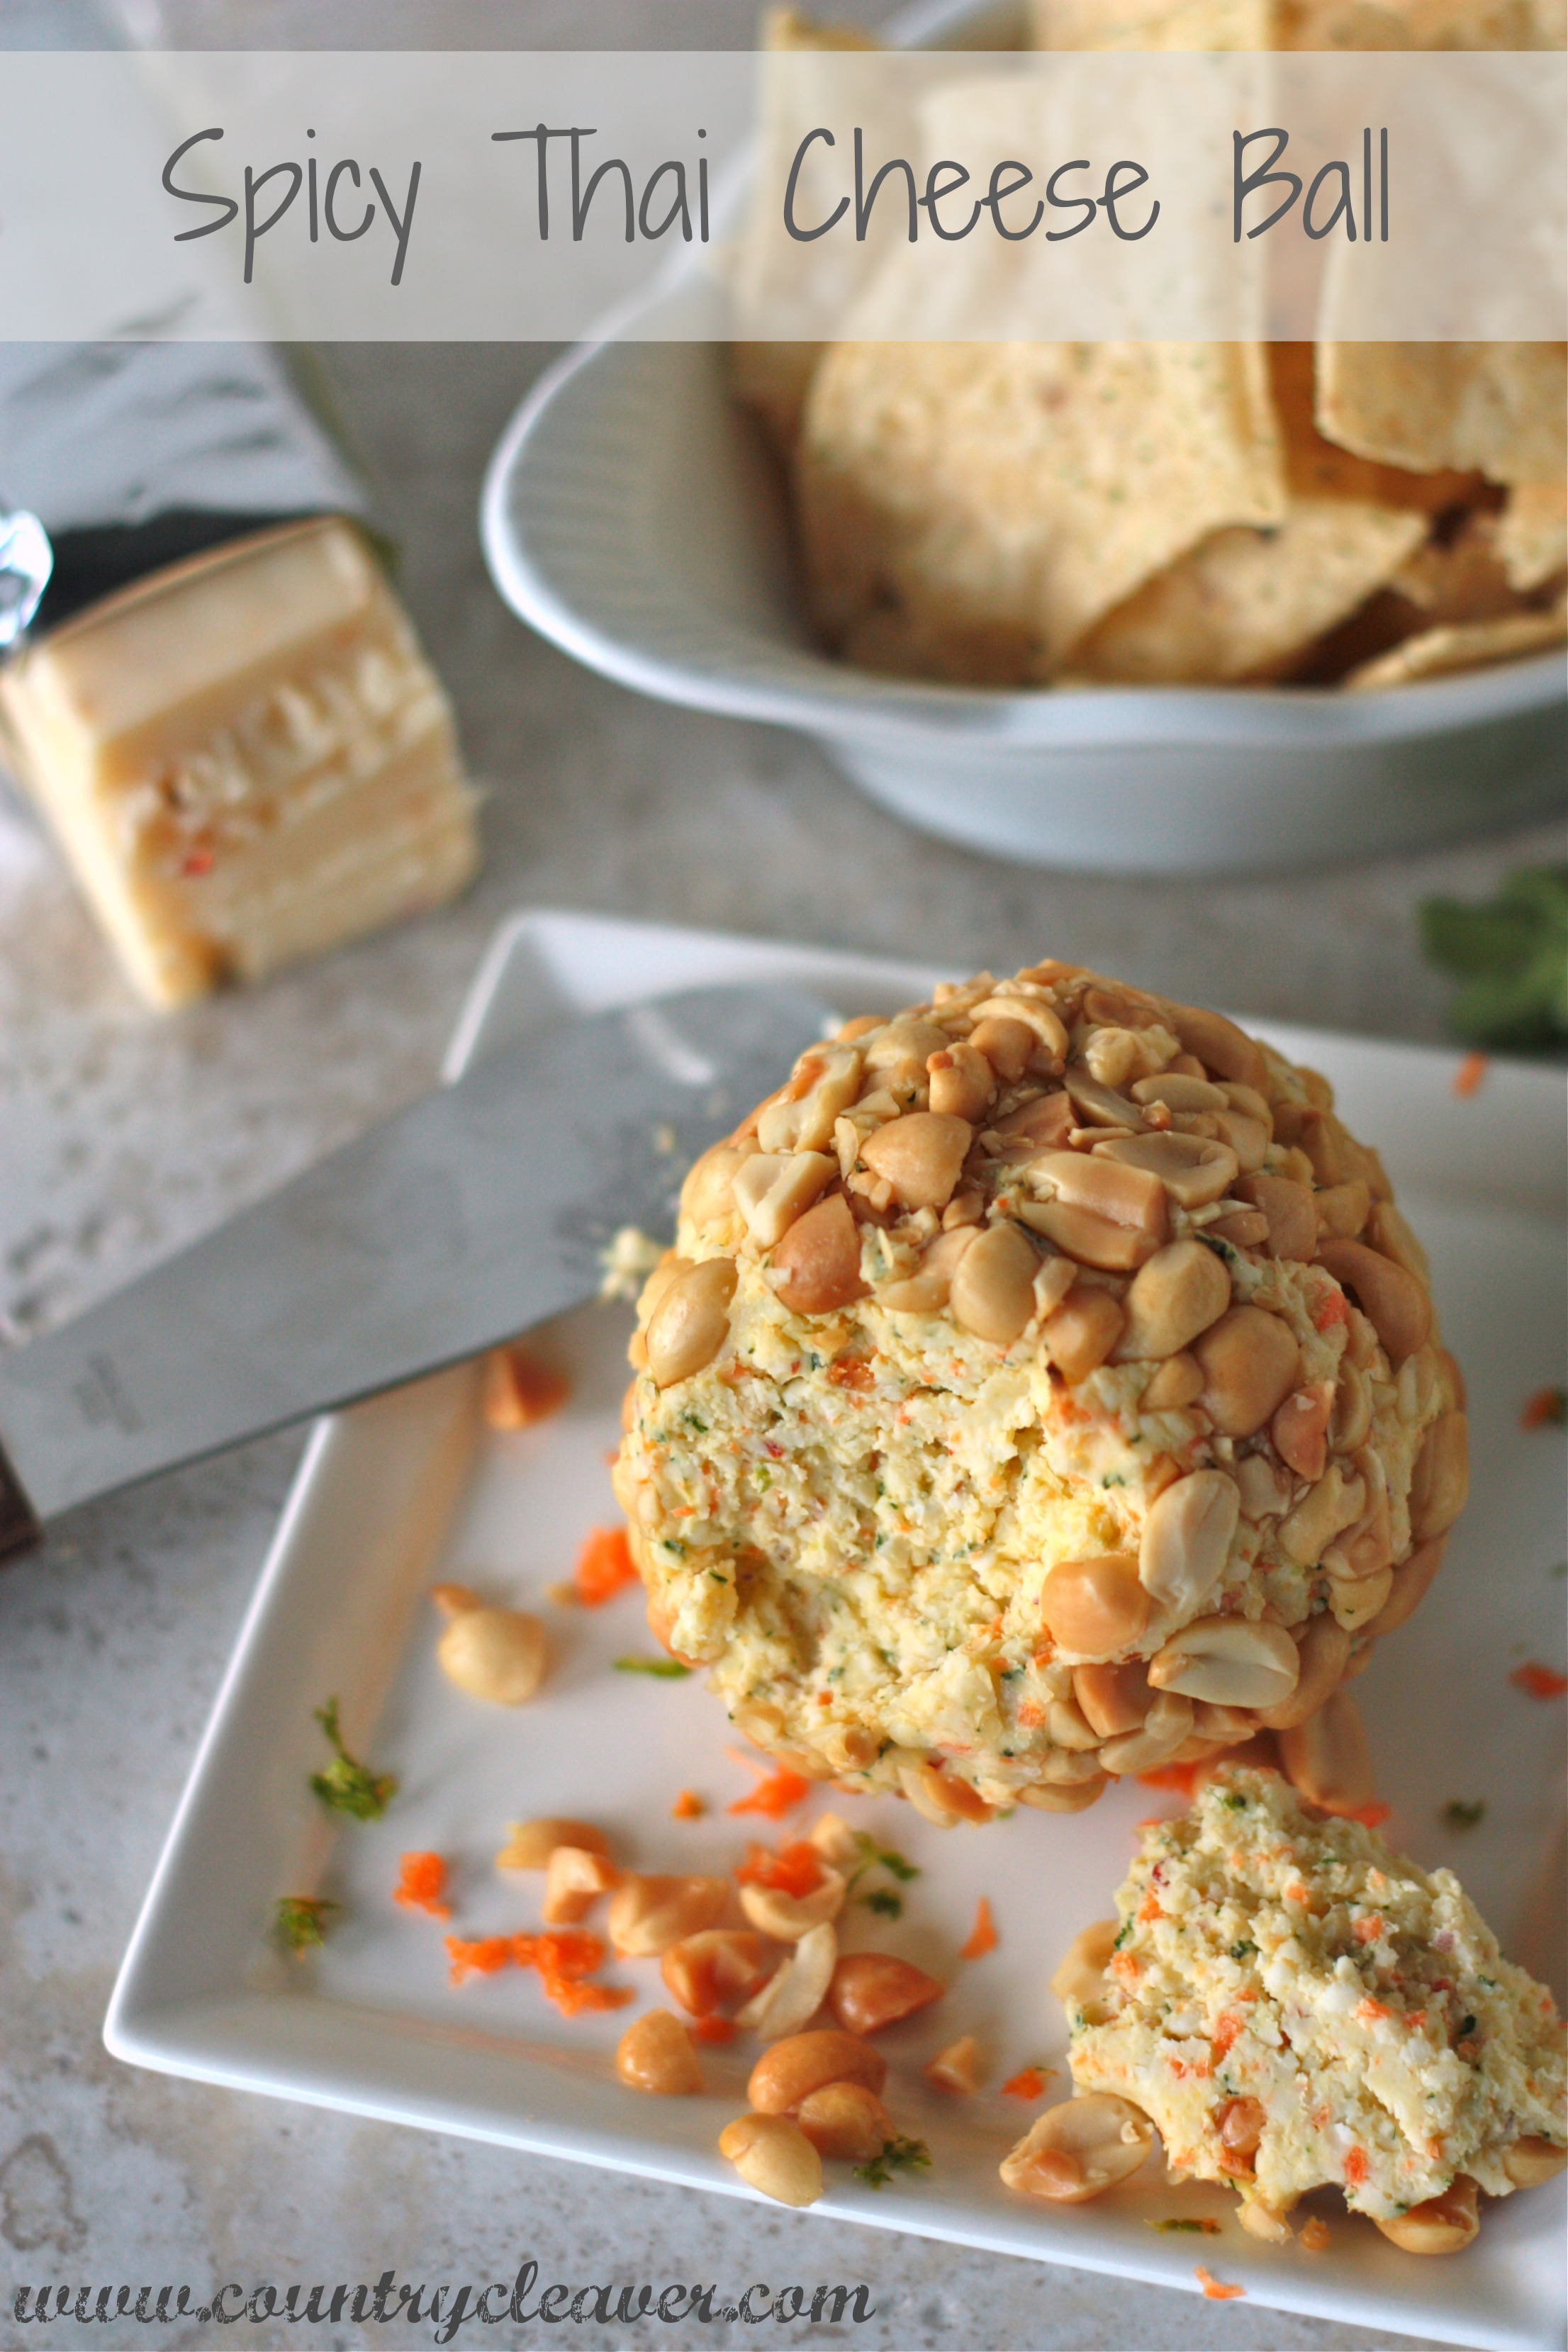 Spicy Thai Cheese Ball | 25+ Cheesy Appetizers and Dips